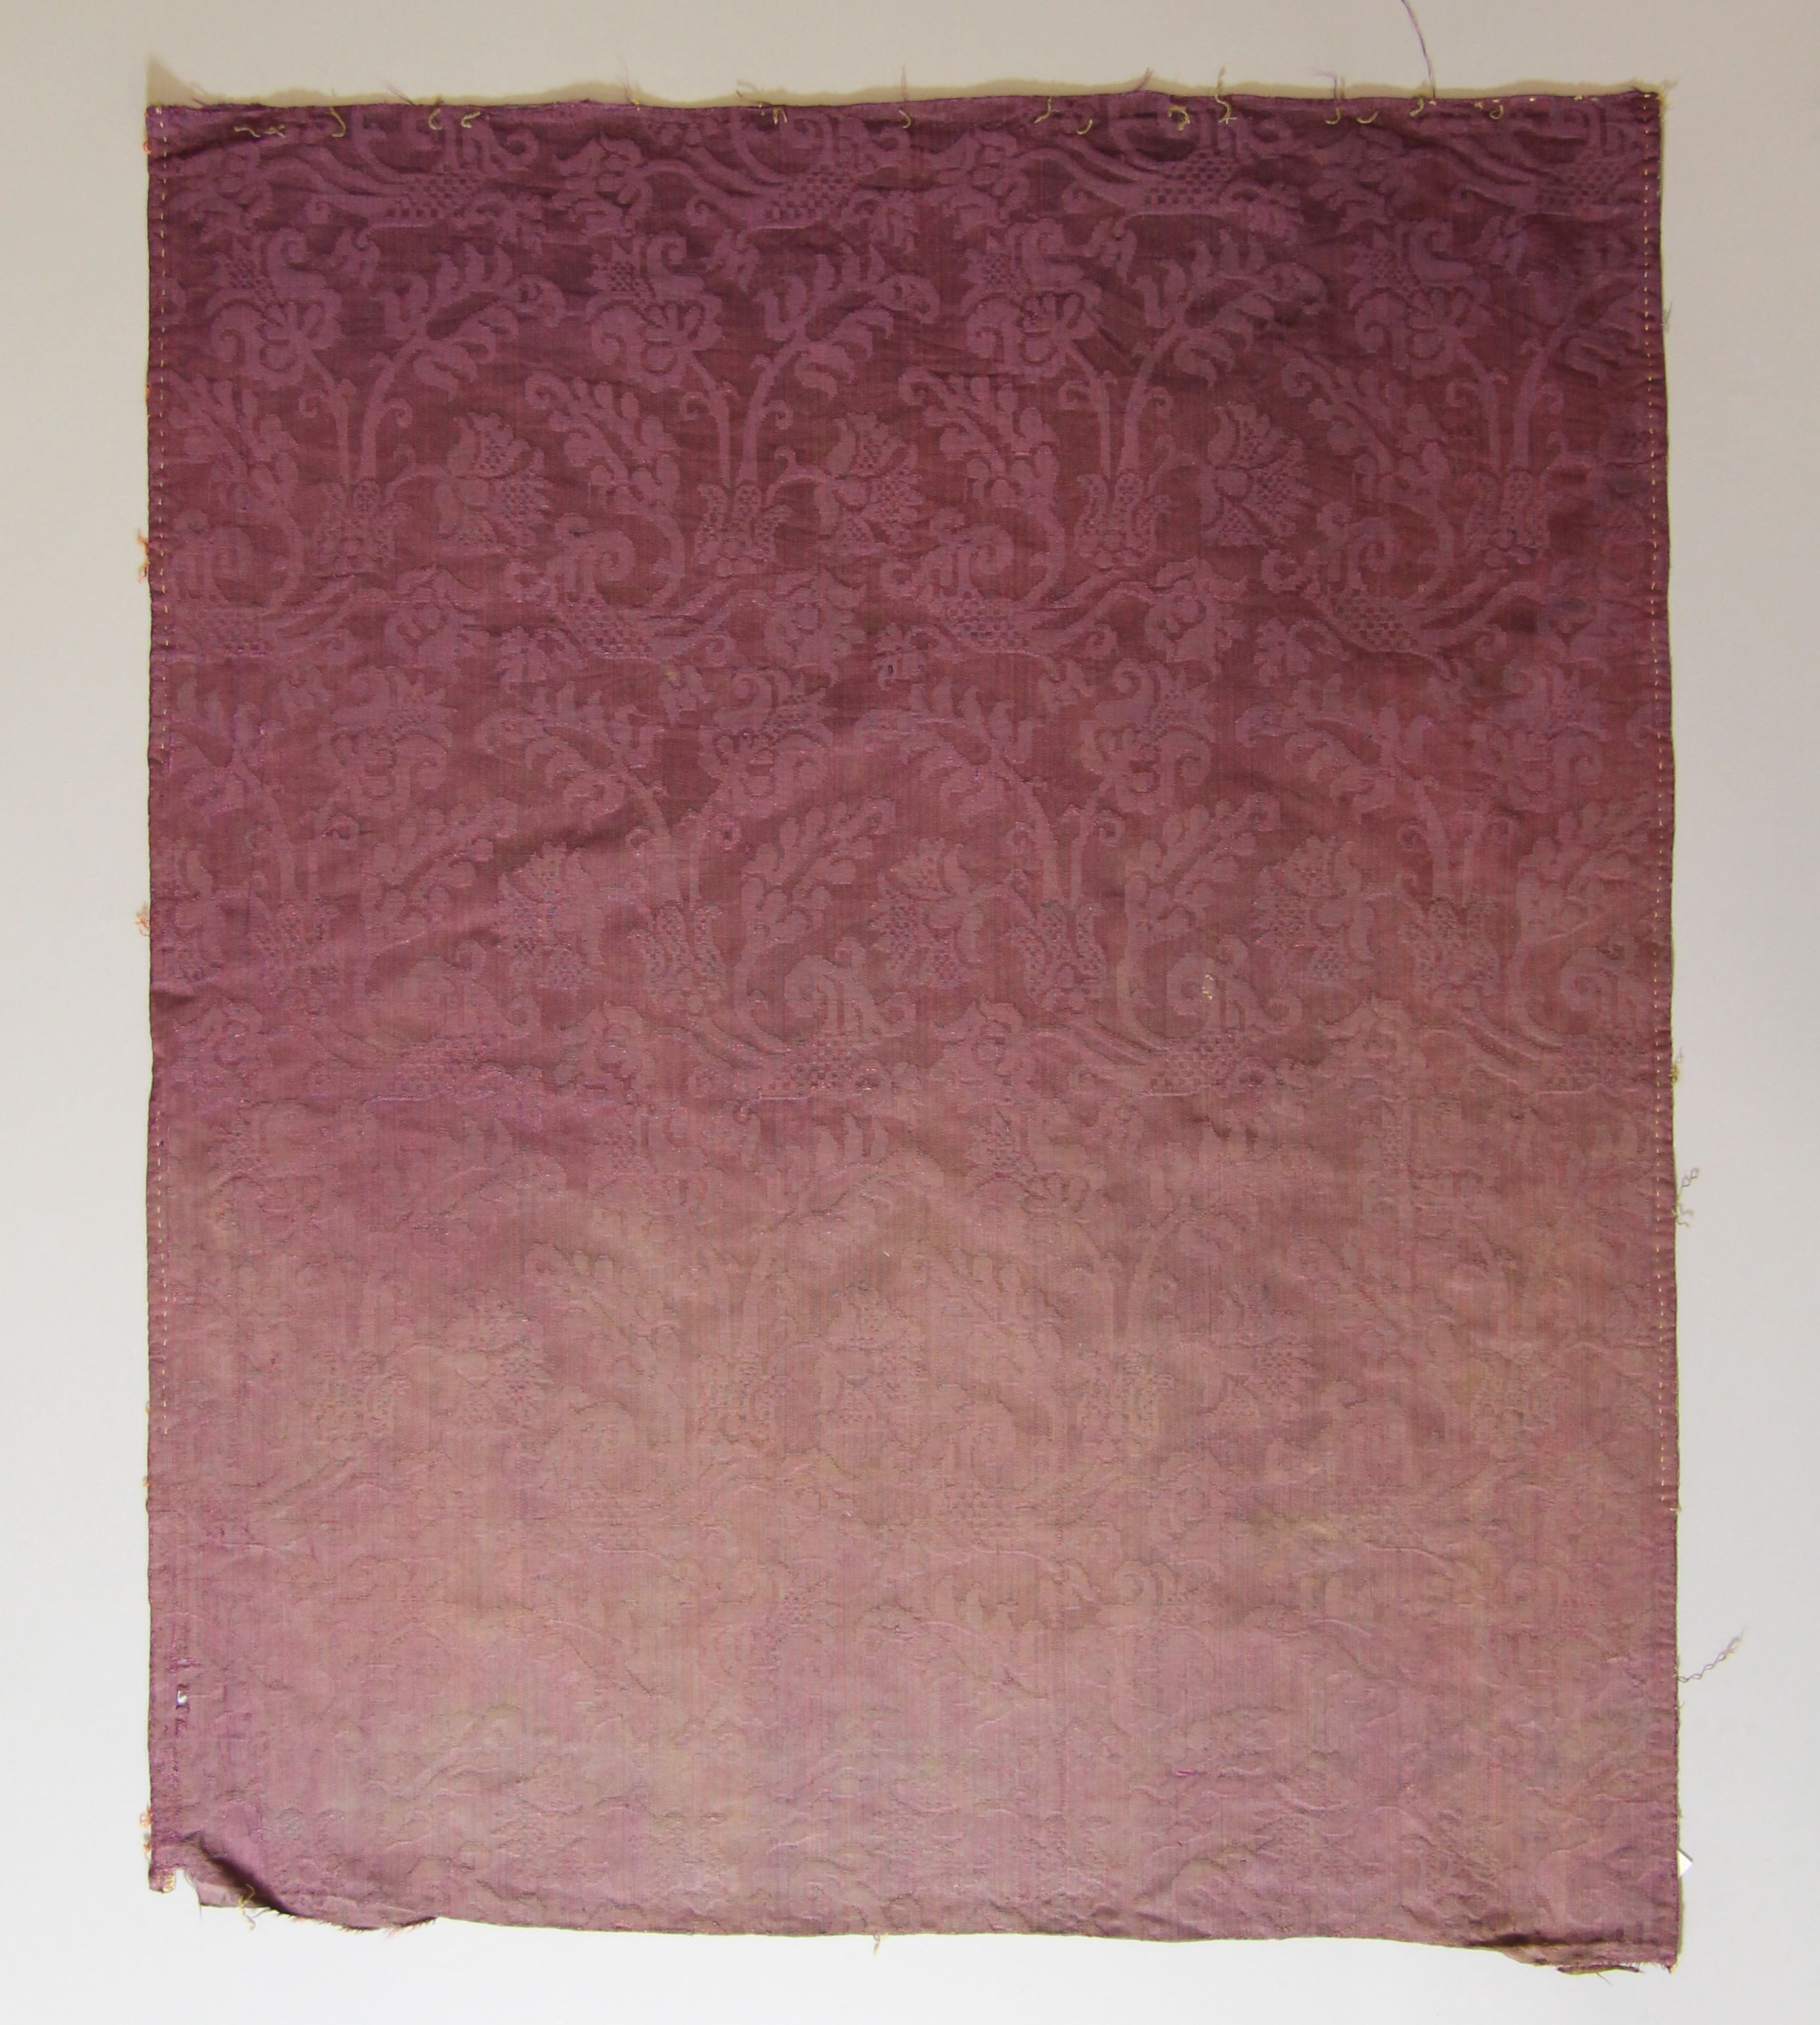 Silk damask panel (fragment)